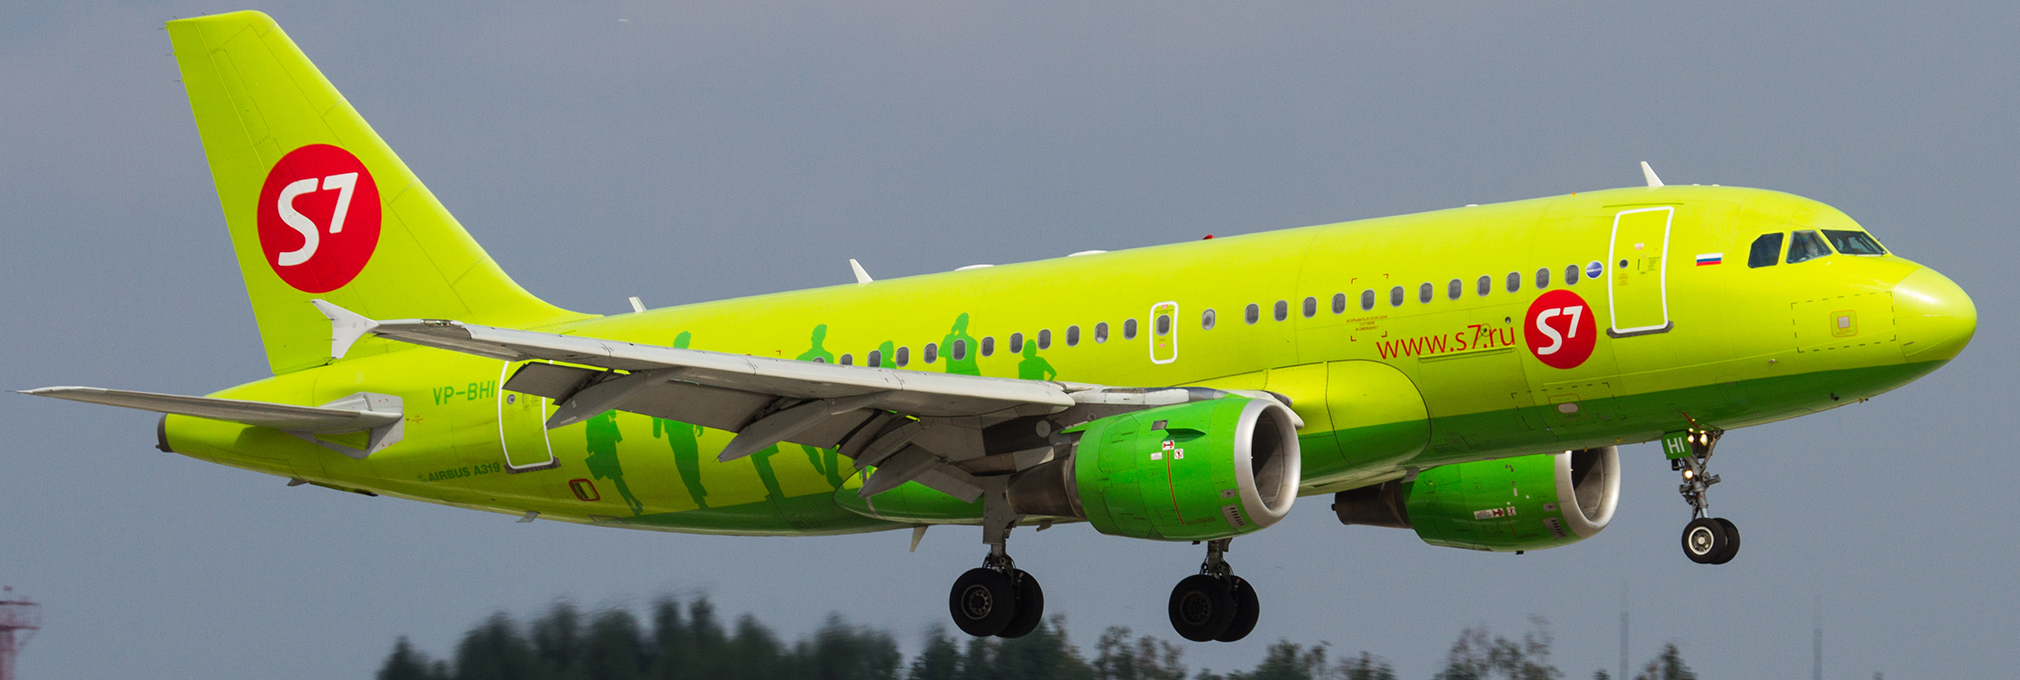 Сайт s7 airlines - 4ccb4